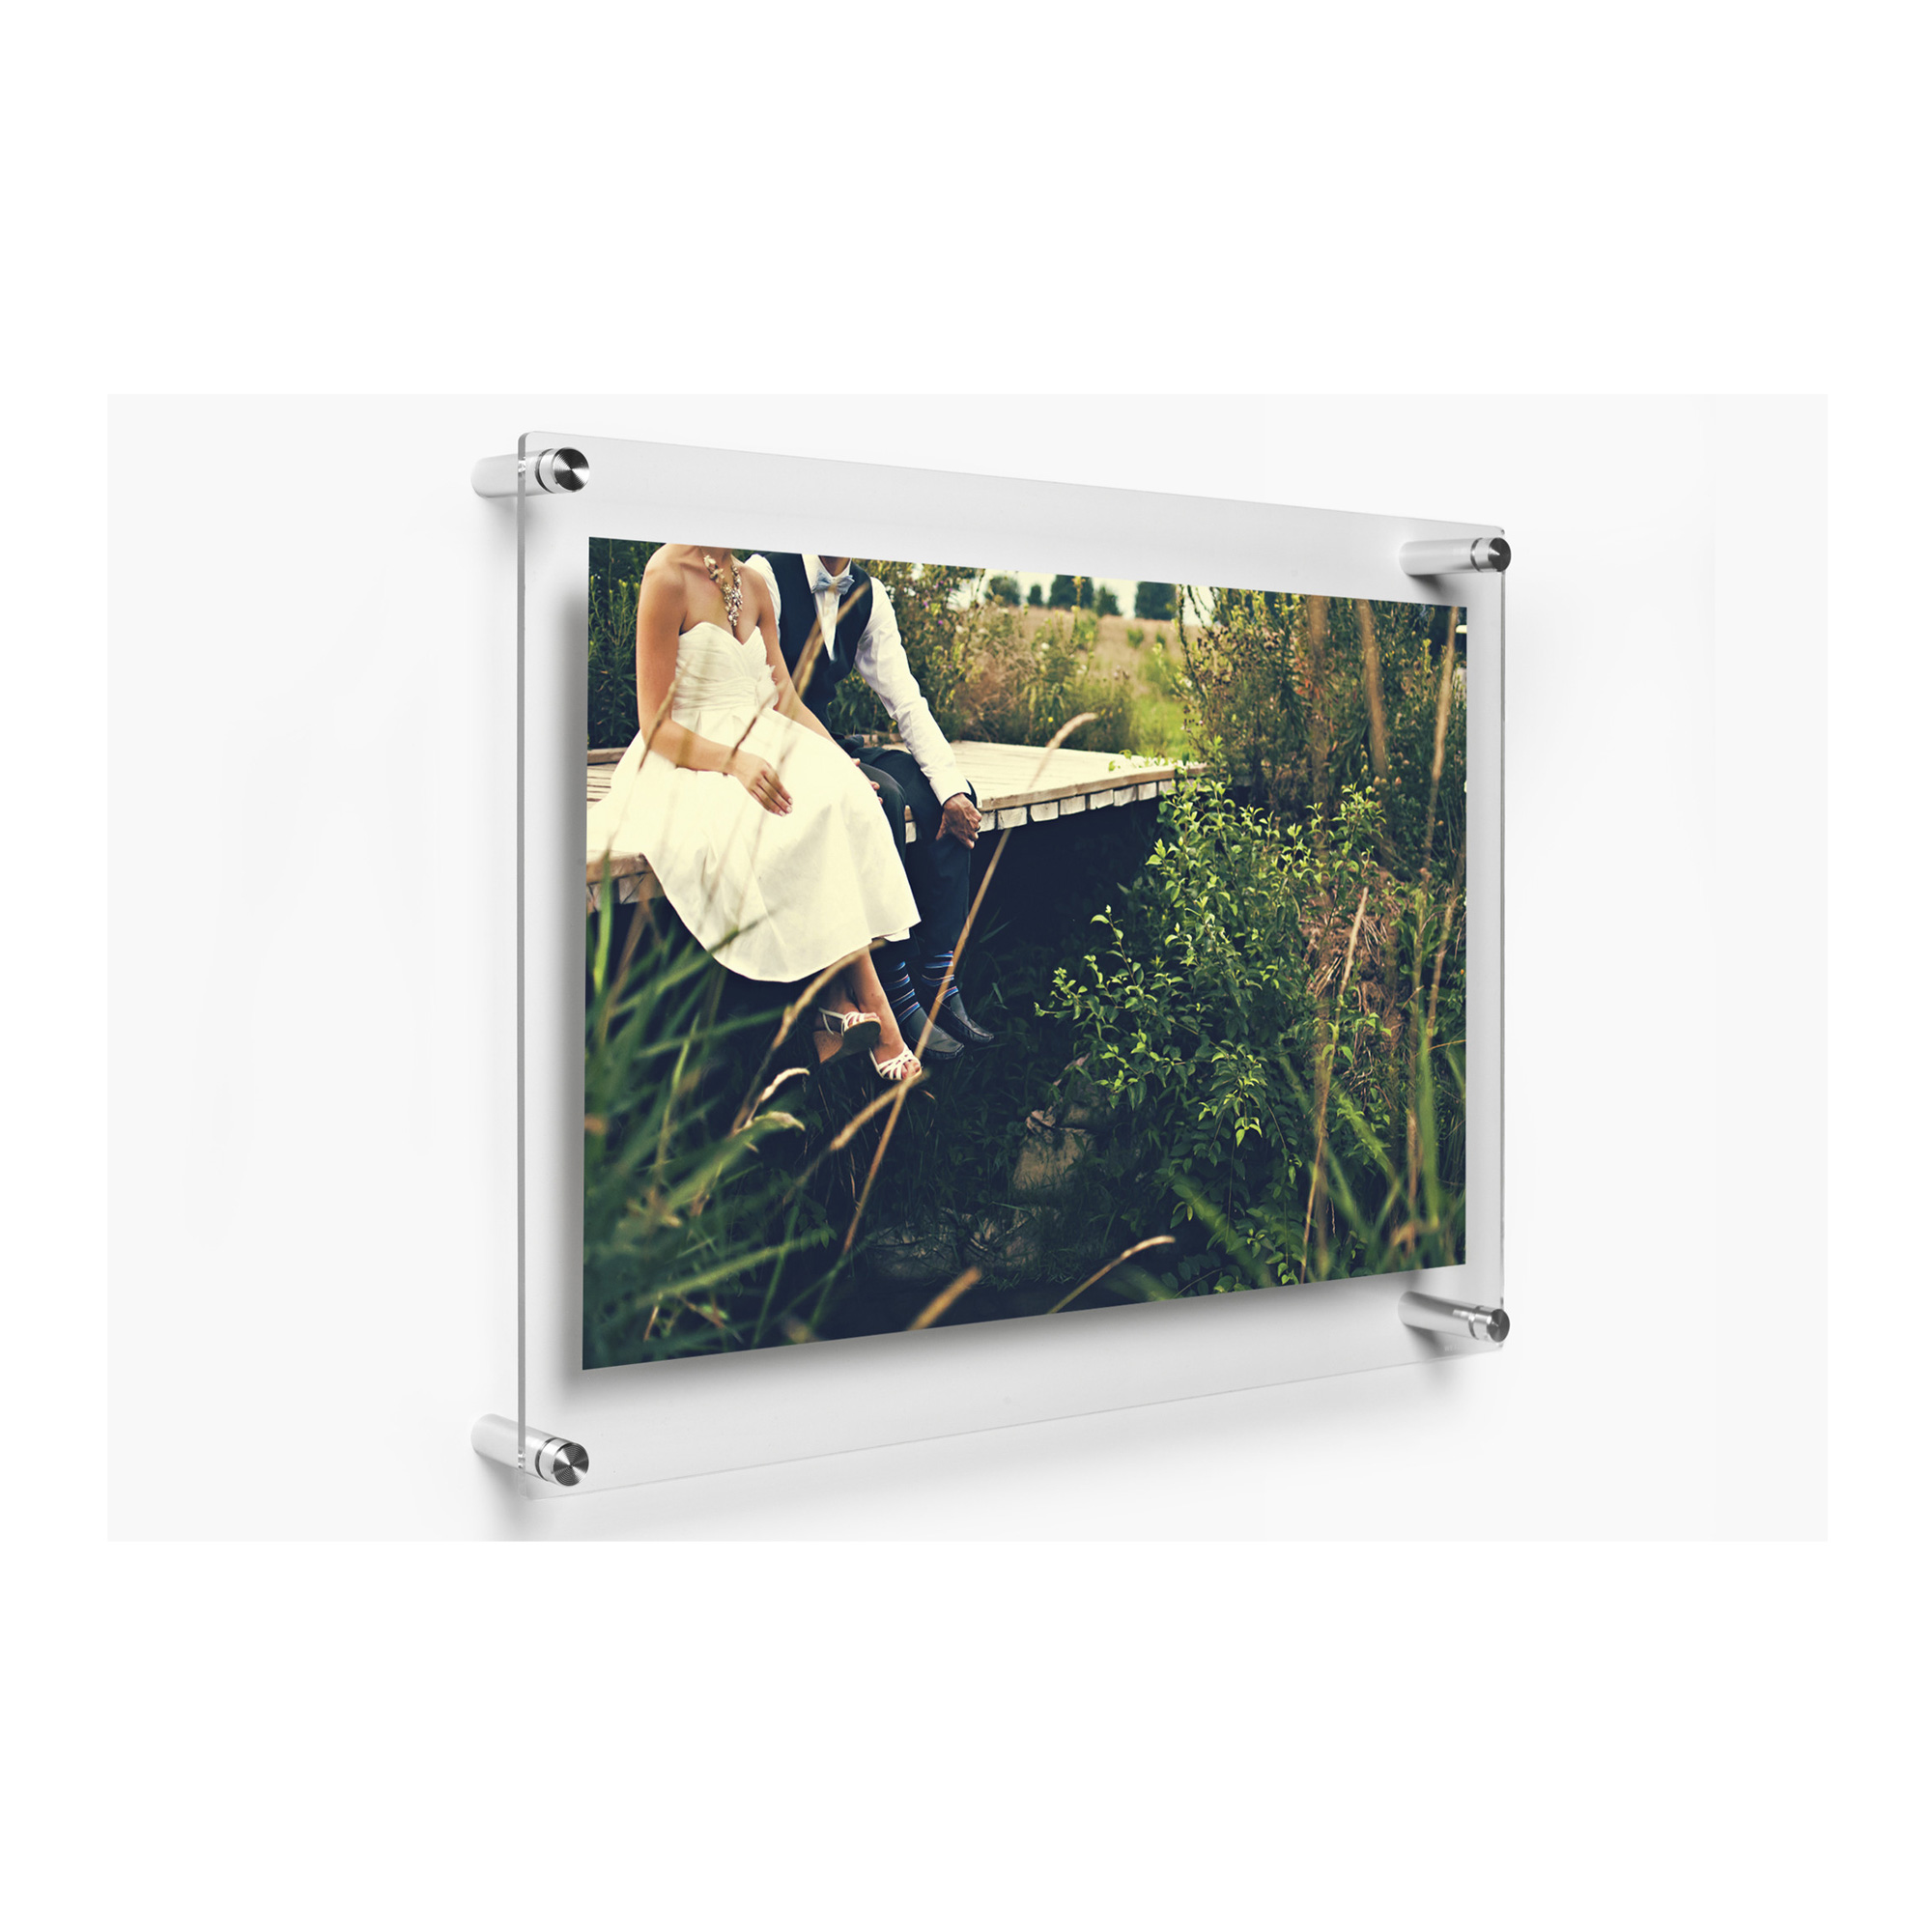 Double Panel 15 X 18 In. Wall Frame for 11x14 In. Art